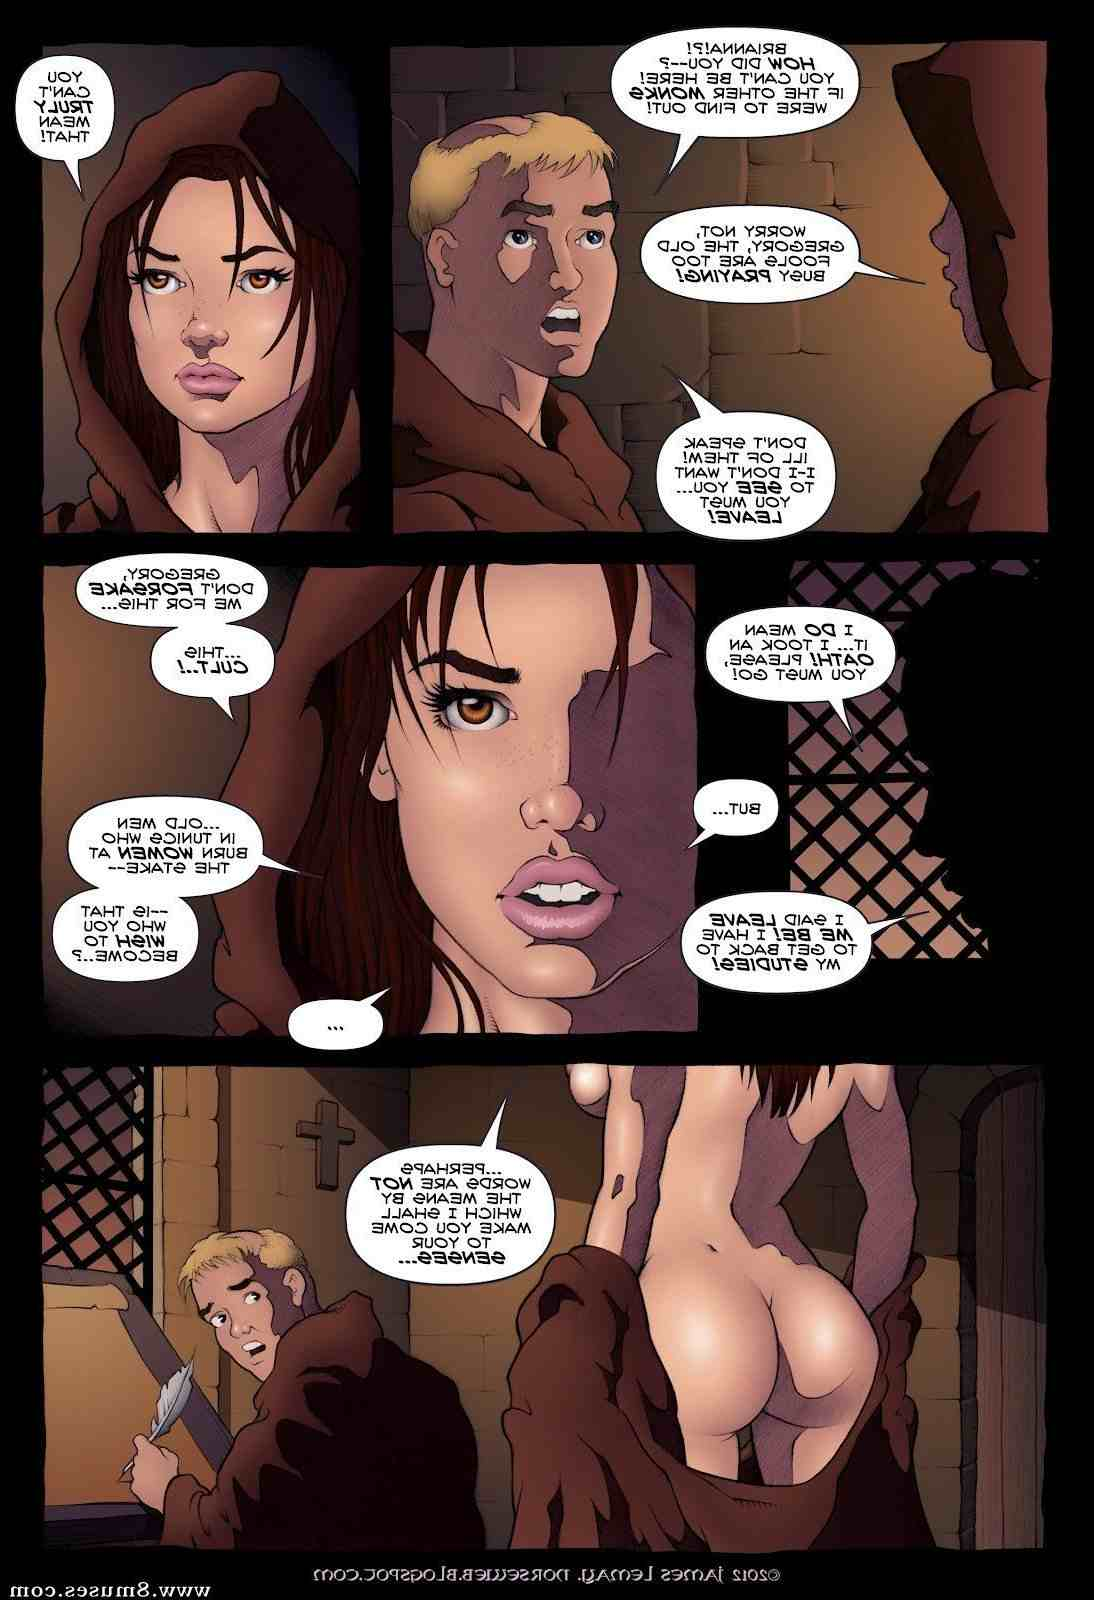 James-Lemay-Comics/Norse-Dawn-of-The-Shield-Maiden Norse_Dawn_of_The_Shield_Maiden__8muses_-_Sex_and_Porn_Comics_5.jpg